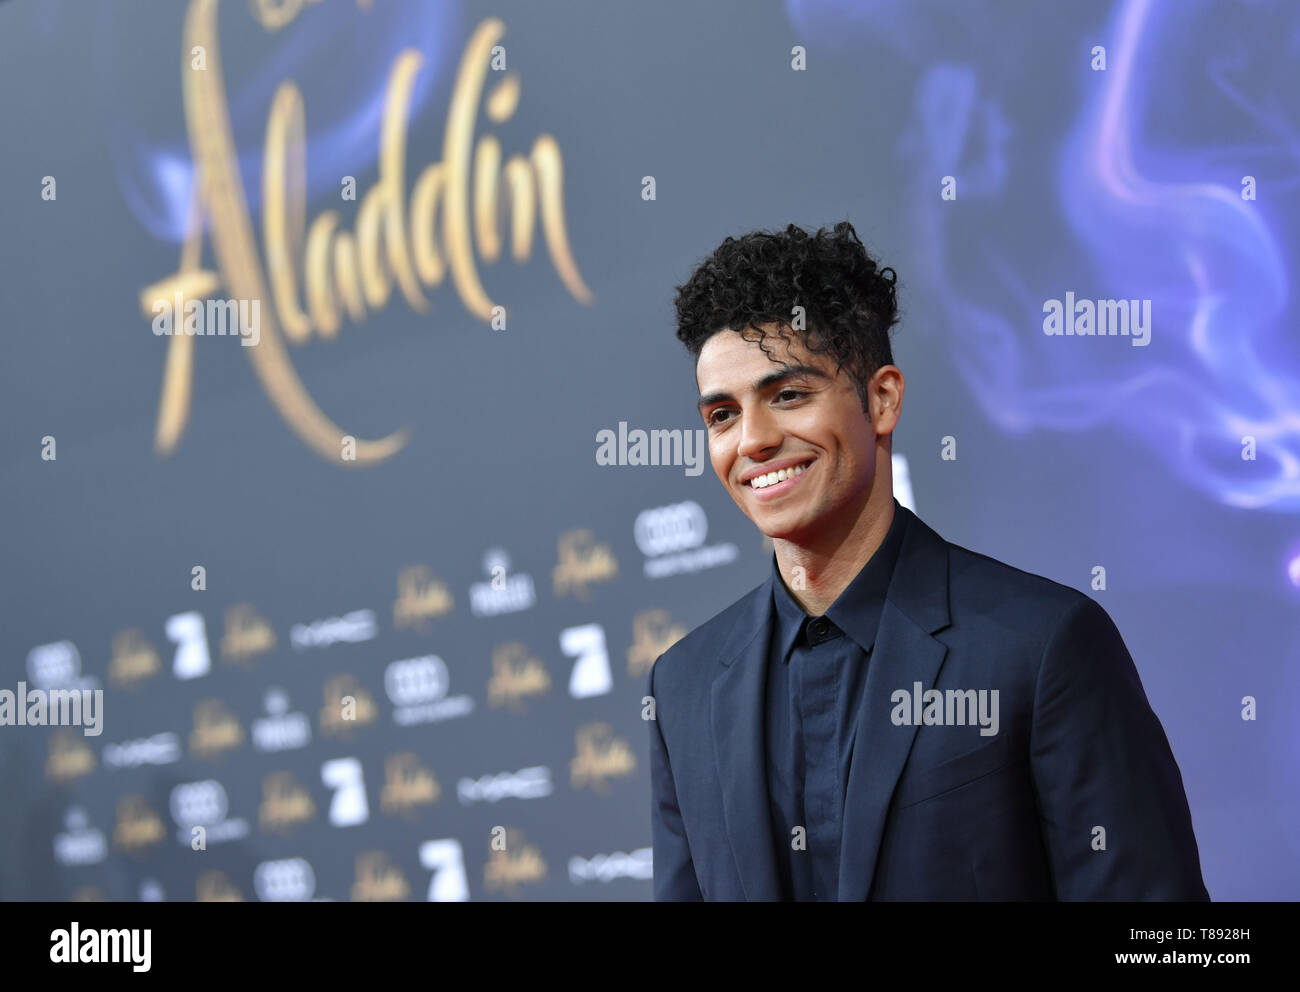 Berlin Germany 11th May 2019 11 May 2019 Germany German Berlin Actor Mena Massoud Comes To The German Premiere Of The New Disney Film Aladin Massoud Plays The Title Role In The